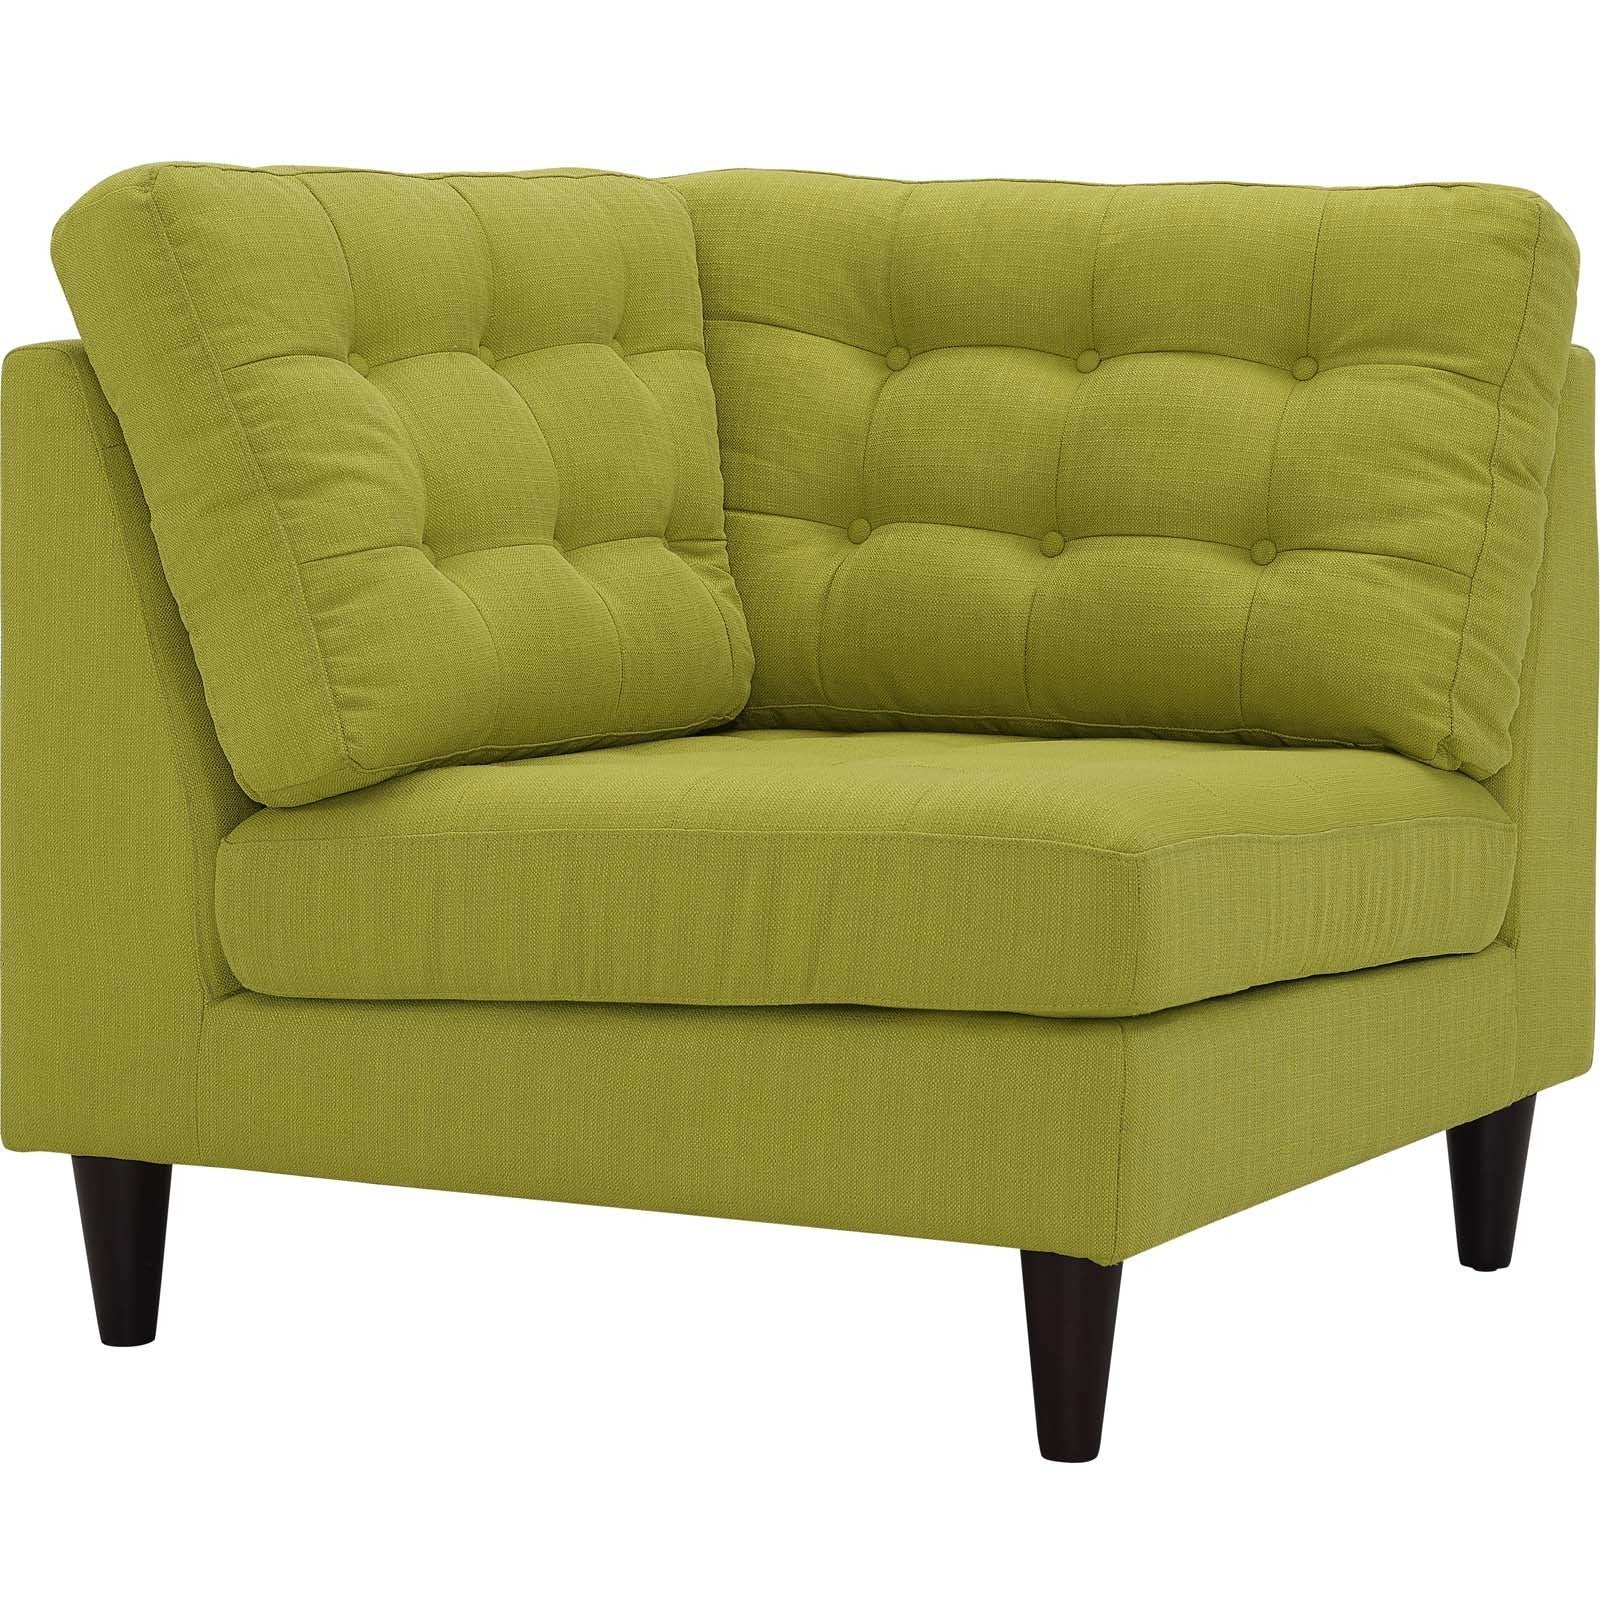 Modway Empress Upholstered Fabric Corner Sofa Free Shipping Today 16741301